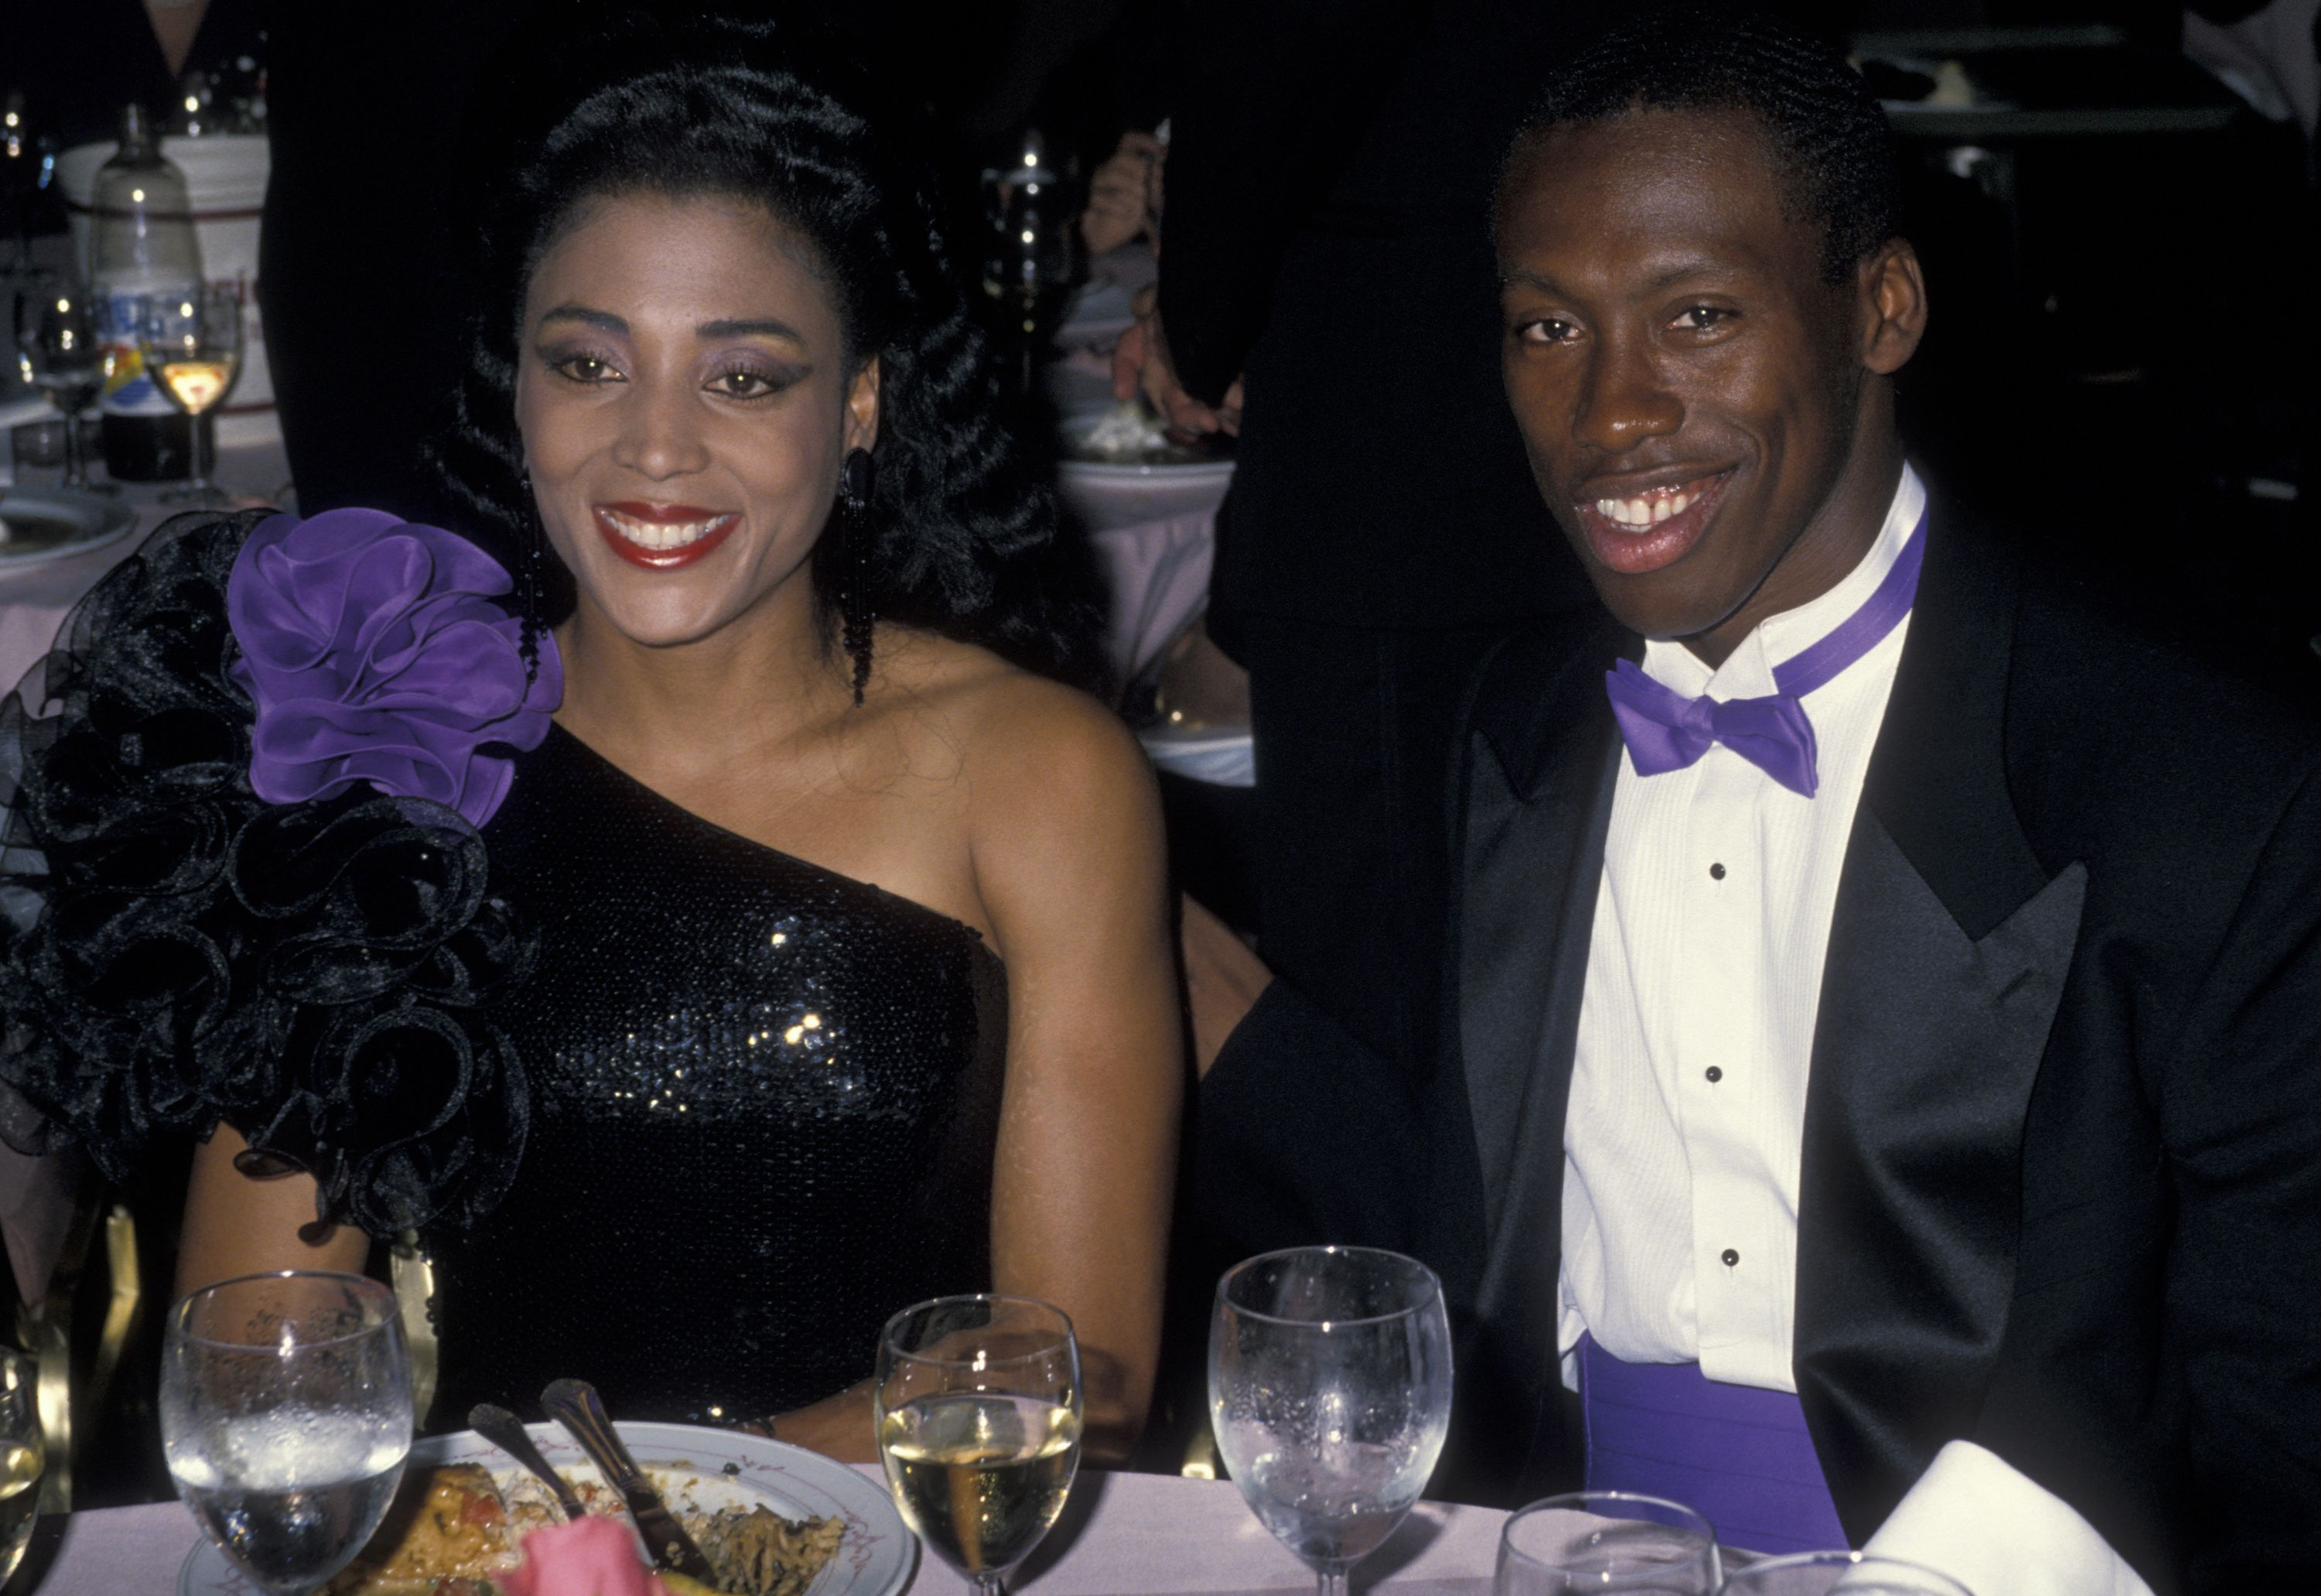 Athletes Florence Griffith-Joyner and Al Joyner at the Annual Woman's Sports Foundation Awards in New York City on October 17, 1988. | Photo: Getty Images